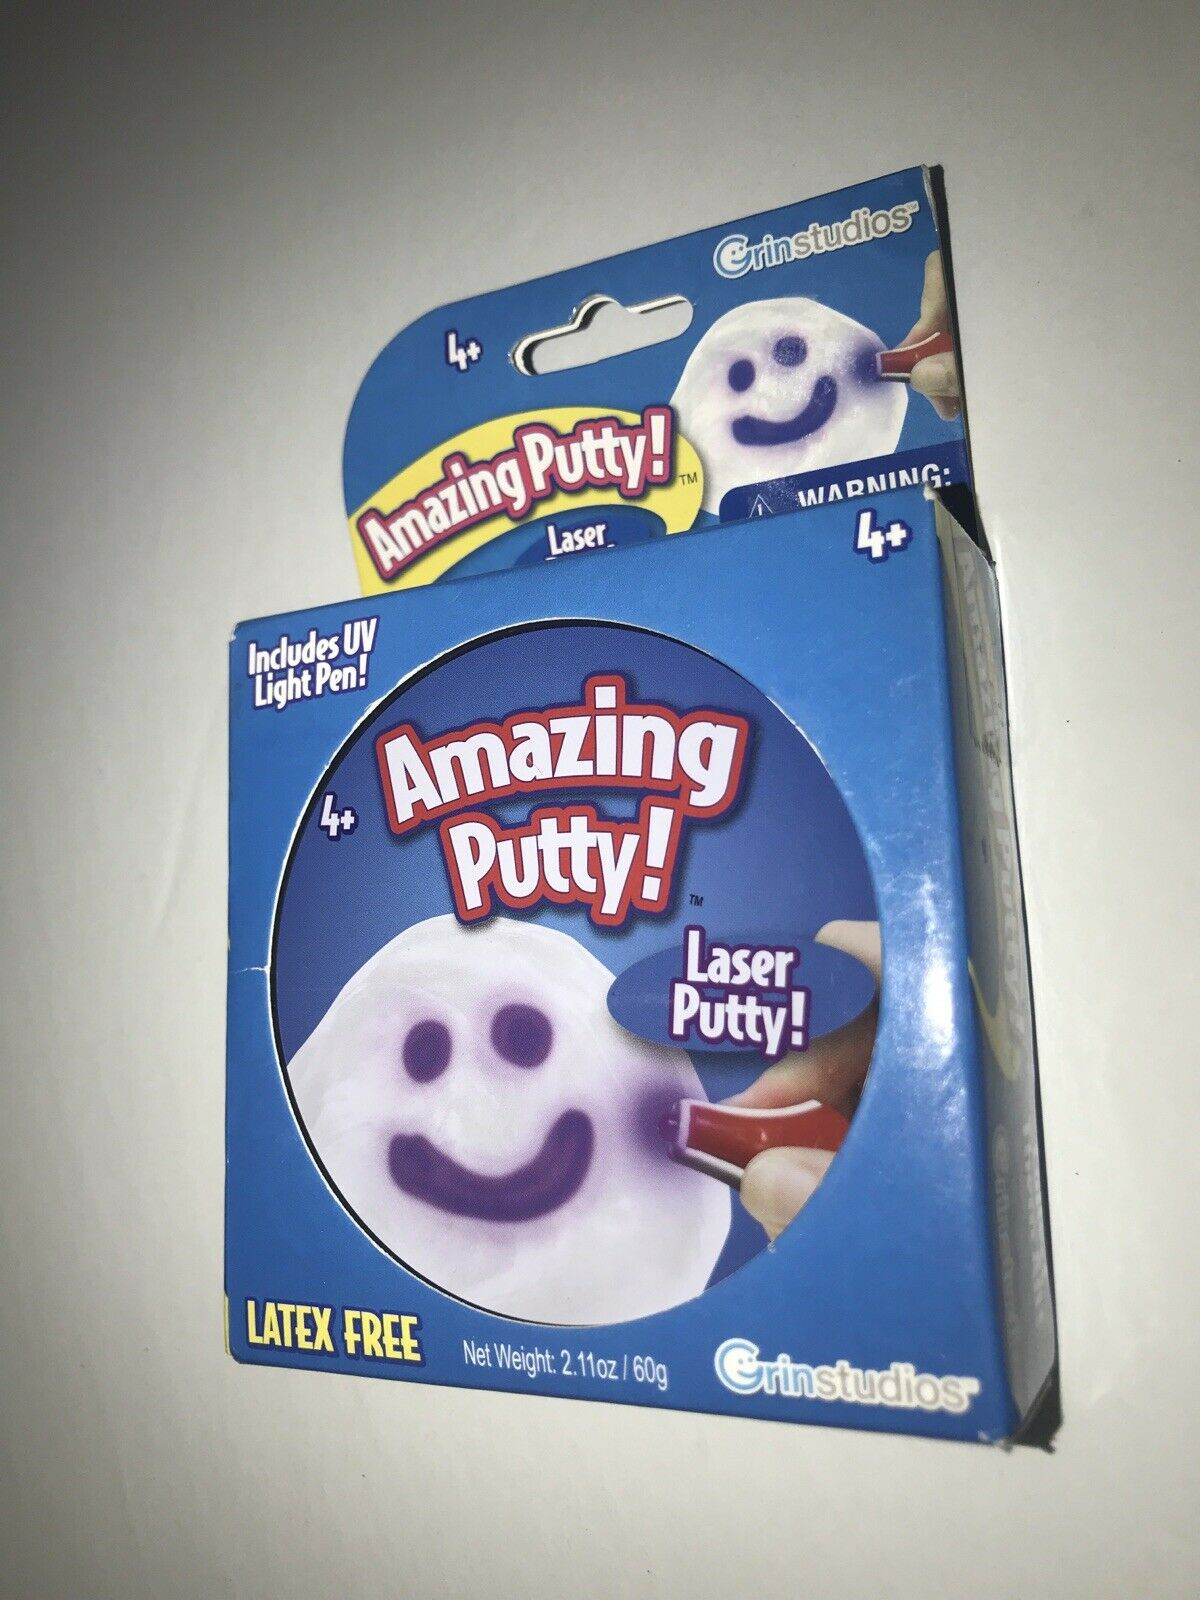 Amazing Putty Grin Studios Laser Putty with UV Light Pen